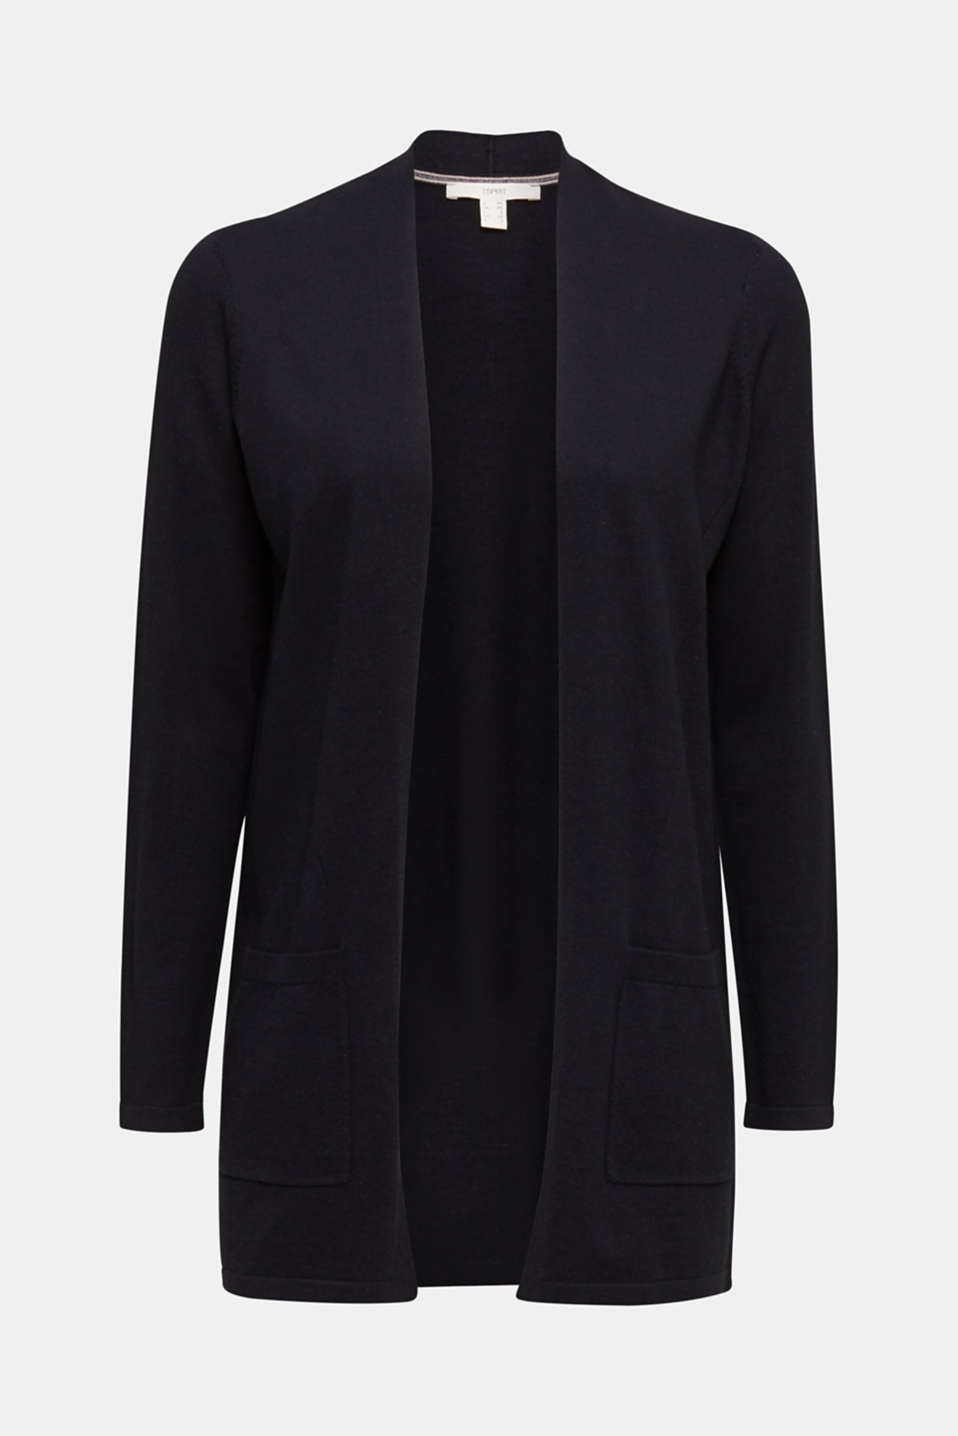 With linen: open cardigan with open-work pattern details, BLACK, detail image number 6